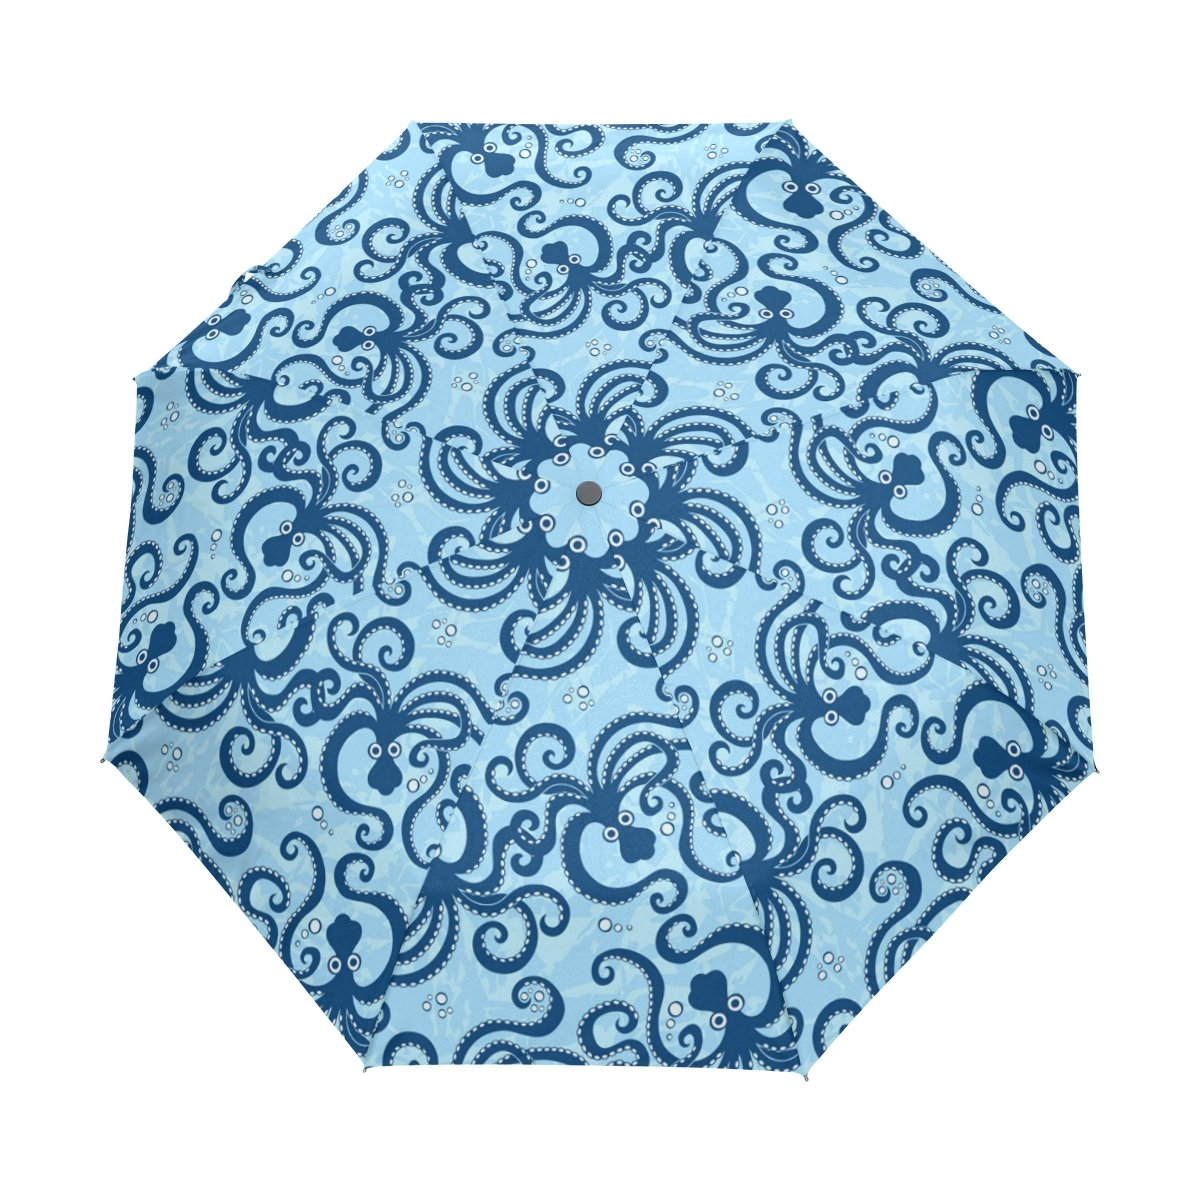 Custom Octopus Compact Travel Windproof Rainproof Foldable Umbrella